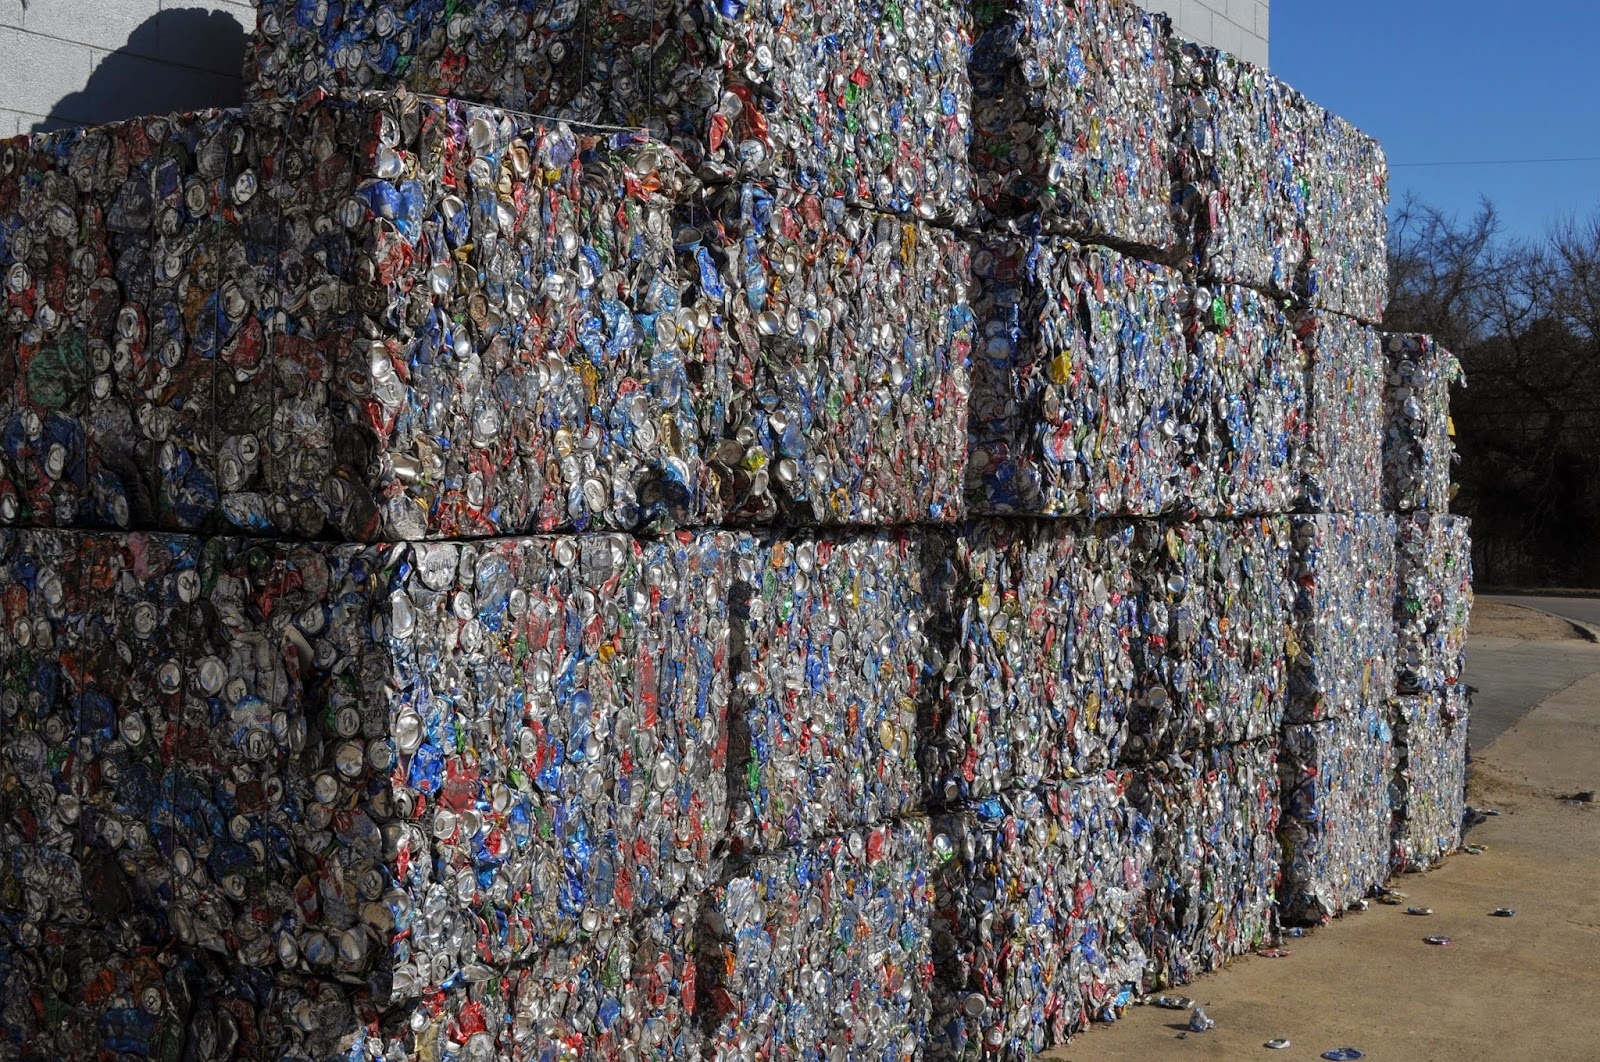 Can recycling at raleigh metal recycling